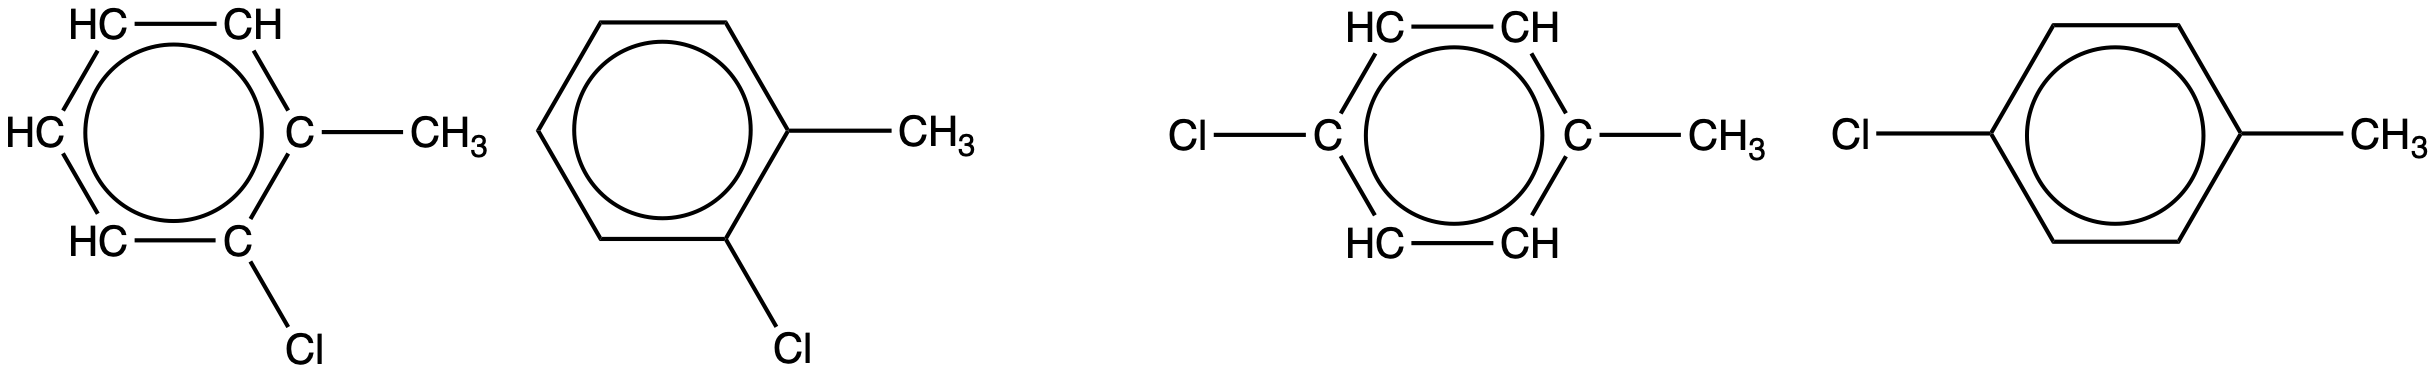 Two pairs of structural formulas are shown. The first has a six carbon hydrocarbon ring in which four of the C atoms are each bonded to only one H atom. At the upper right of the ring, the C atom that does not have a bonded H atom has a C H subscript 3 group attached. The C atom to the right has a C l atom attached. A circle is at the center of the ring. The second molecule in the first pair has a hexagon with a circle inside. From a vertex of the hexagon at the upper right a C H subscript 3 group is attached. From the vertex at the right, a C l atom is attached. The second pair first shows a six carbon hydrocarbon ring in which four of the C atoms are each bonded to only one H atom. A C l atom is attached to the left-most C atom and a C H subscript 3 group is attached to the right-most C atom. A circle is at the center of the ring. The second molecule in the pair has a hexagon with a circle inside. A C H subscript 3 group is attached to a vertex on the right side of the hexagon and to a vertex on the left side, a C l atom is bonded.